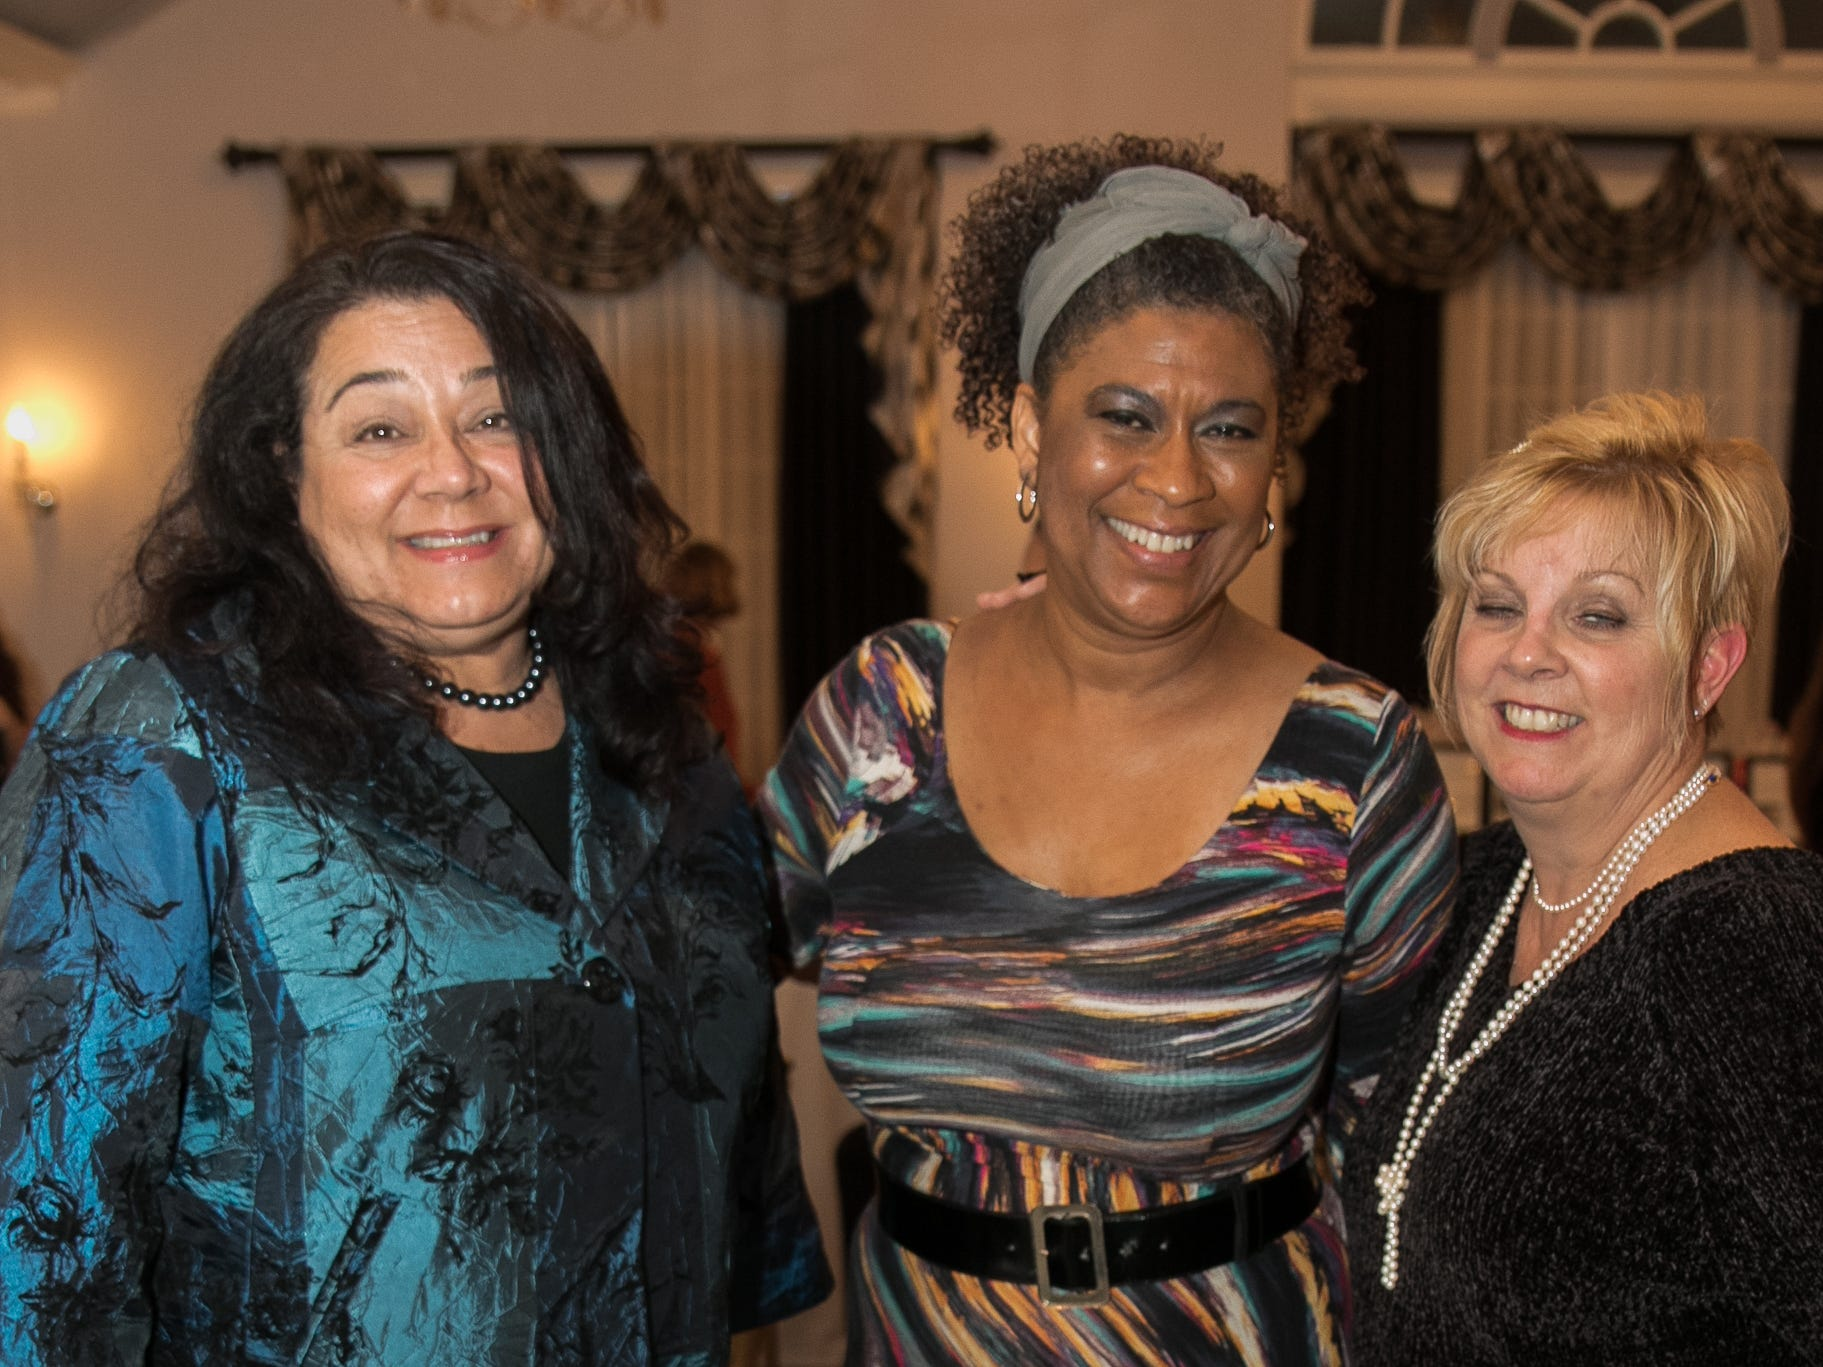 Chris Gillespie, Lynne Algramt, Debbie Emery. The Bergen Volunteer Center celebrated its 10th anniversary of the Bergen LEADS program at The Hearts of Gold Dinner and Auction at the Stony Hill Inn in Hackensack. 11/08/2018